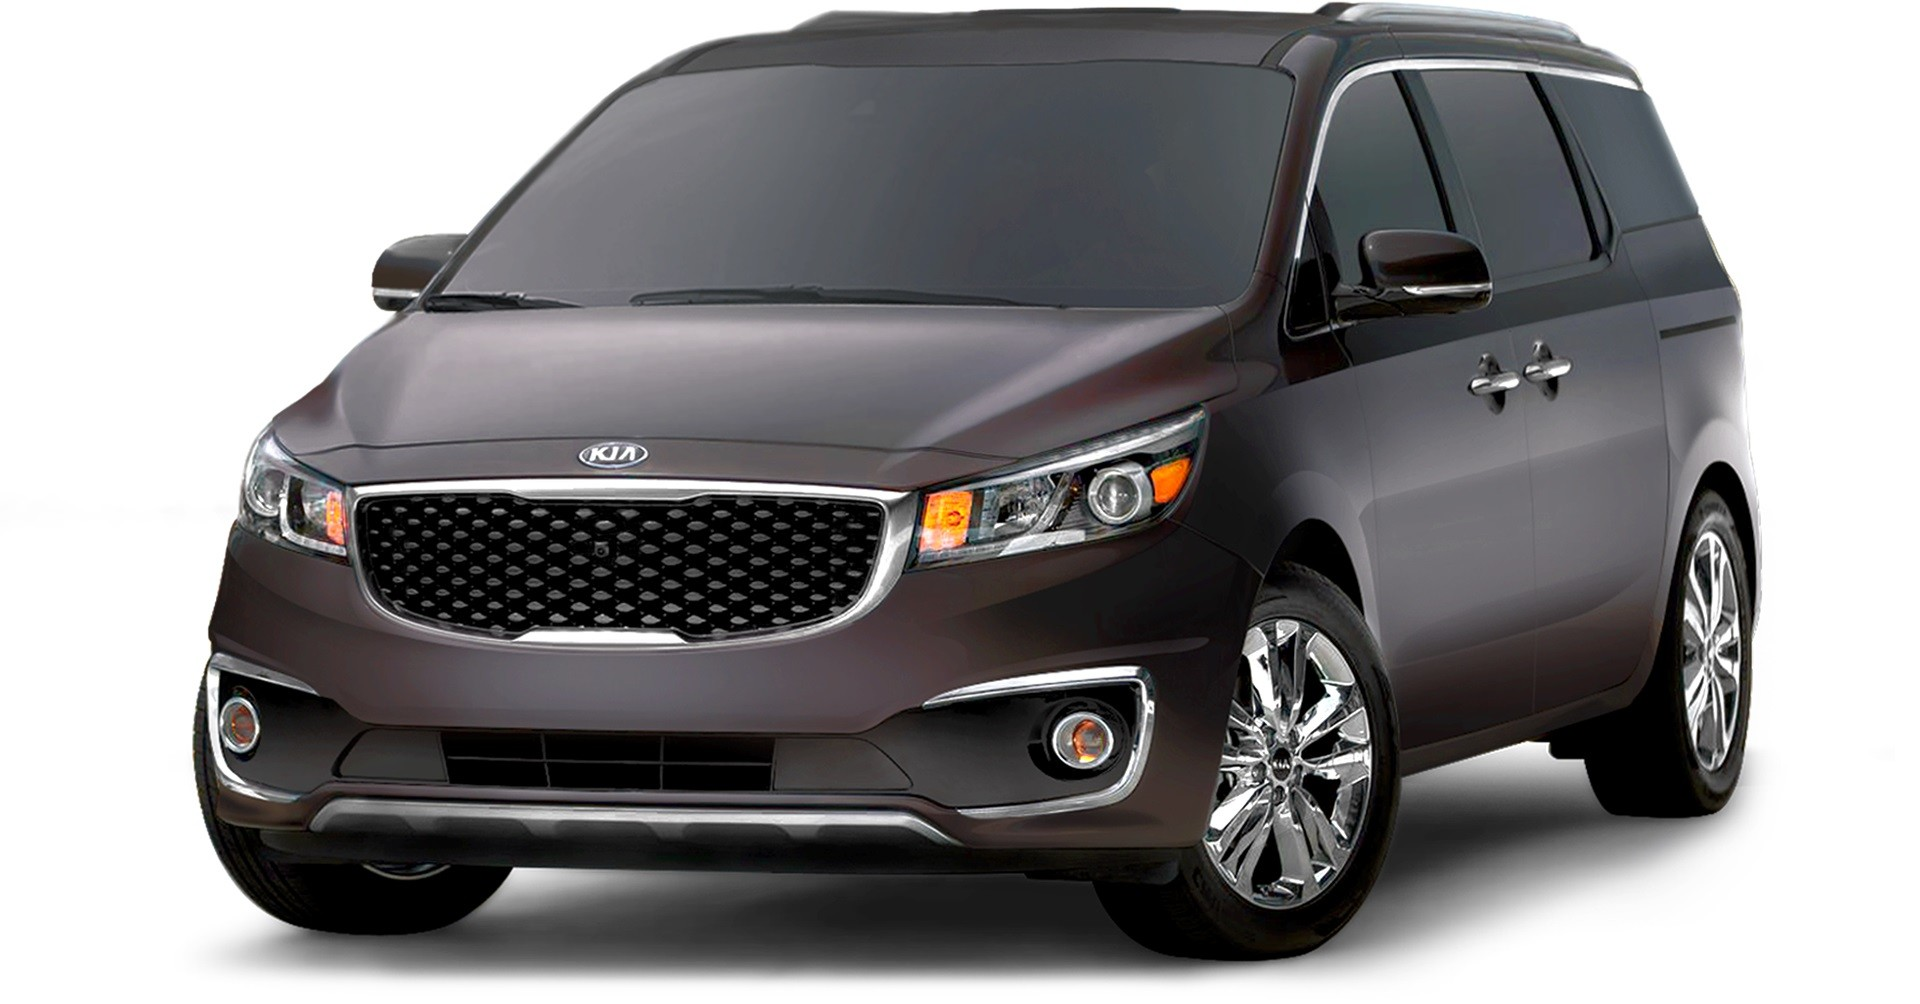 New 2015 Kia Sedona near Renton at Kia of Puyallup